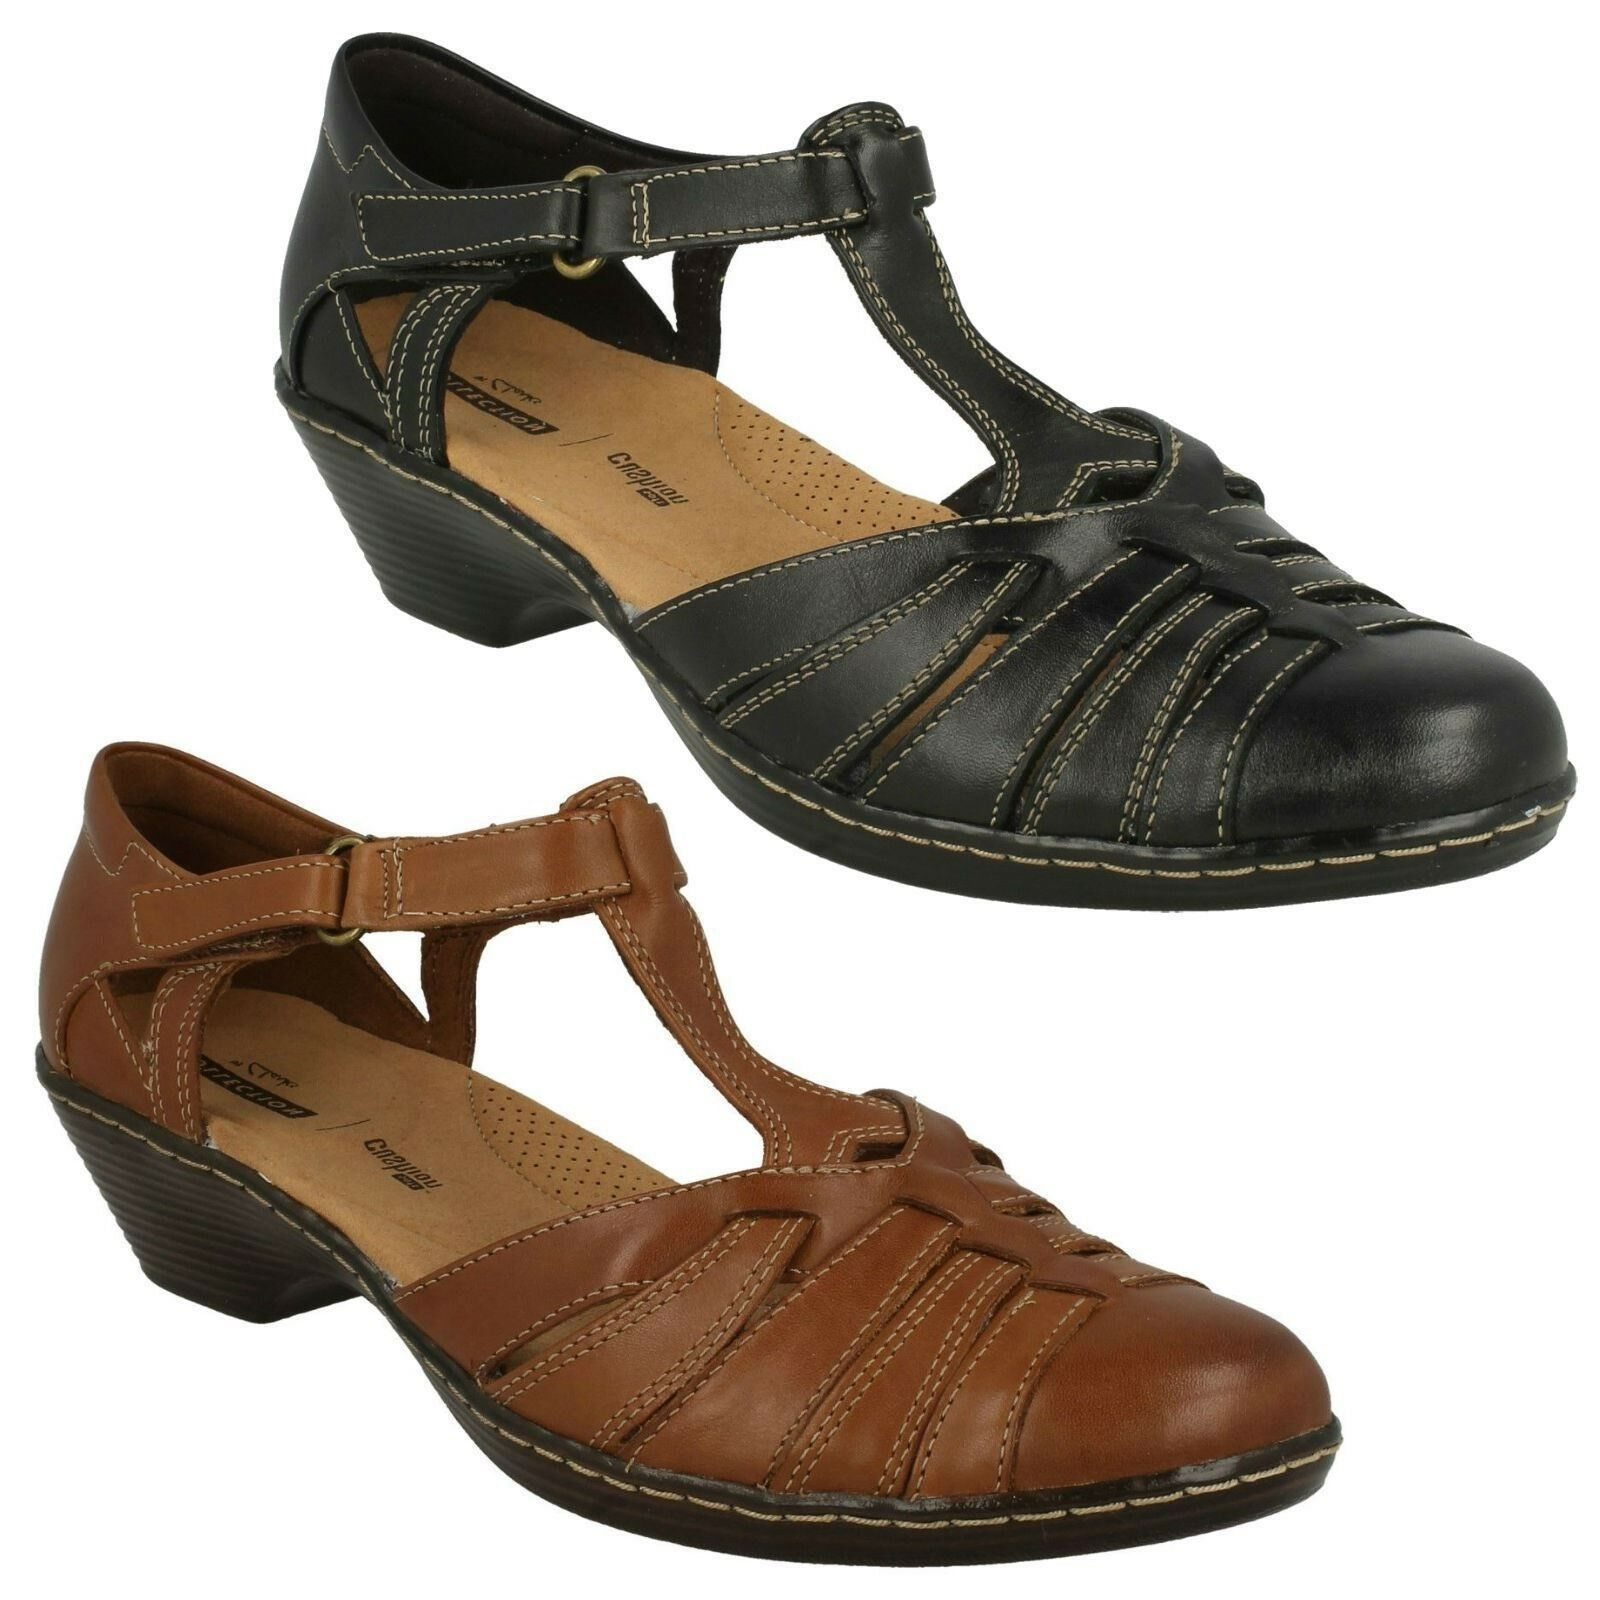 LADIES CLARKS LEATHER SCOOP WEDGE T-BAR CASUAL SANDALS Schuhe SIZE WENDY ALTO